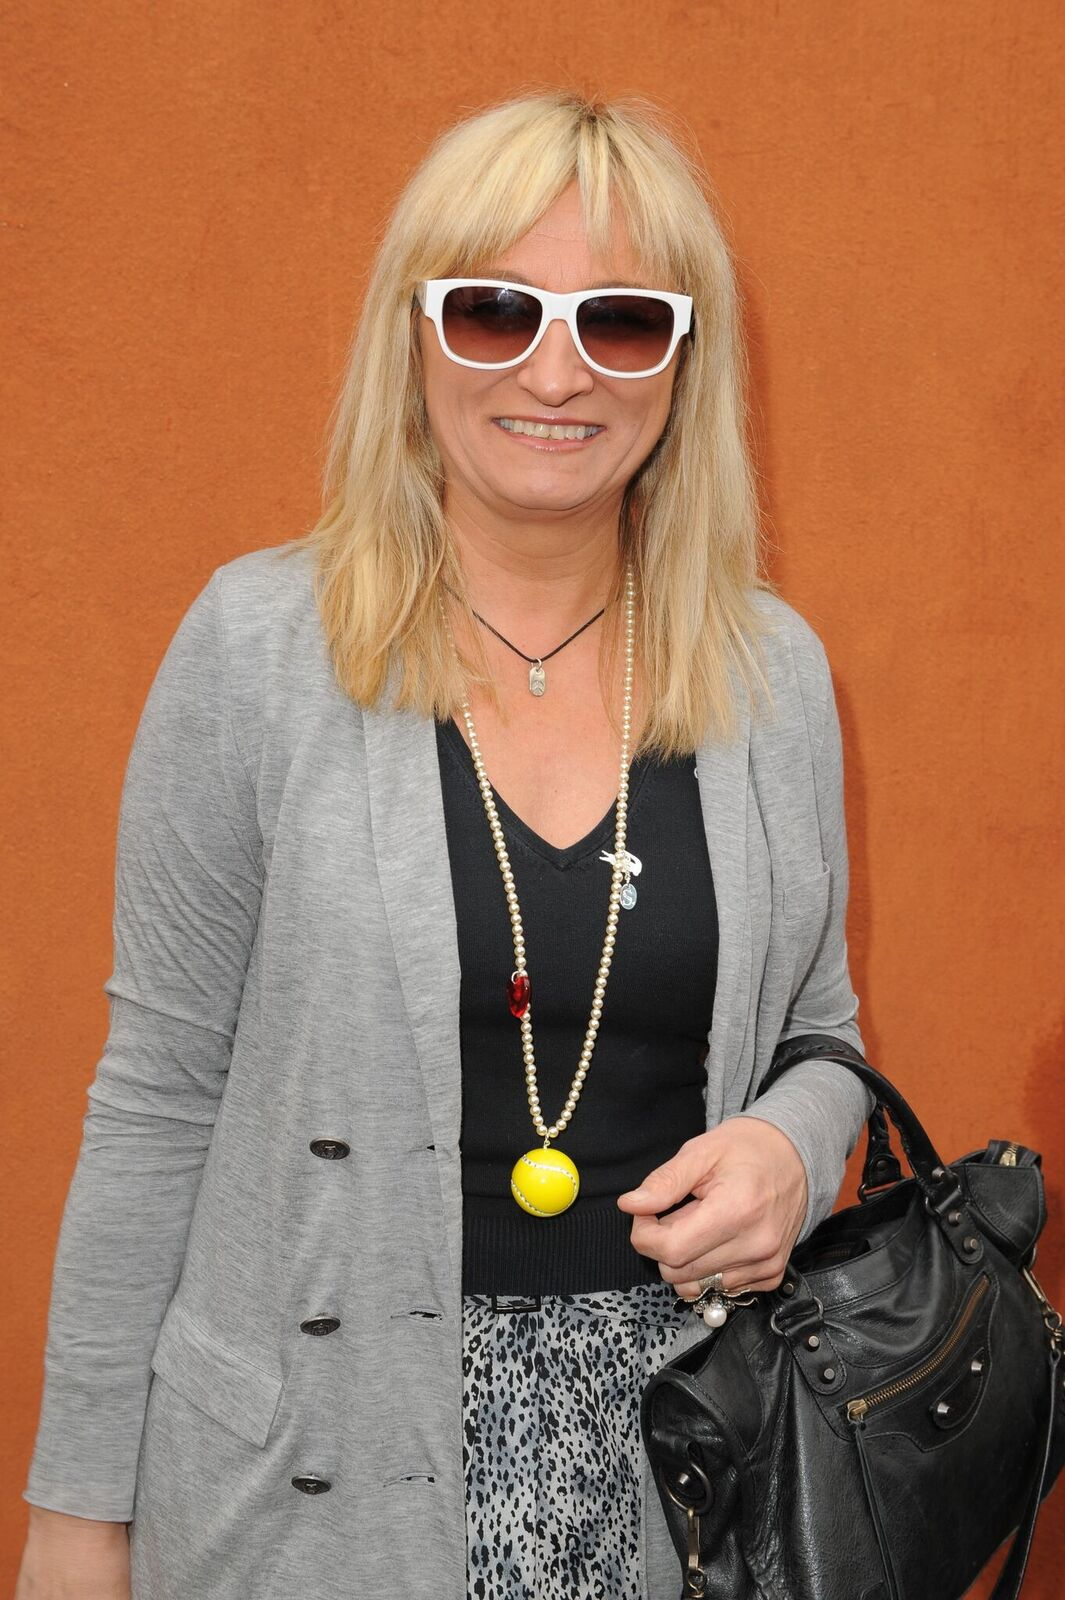 Christine Bravo au village de Roland Garros. | Photo : Getty Images